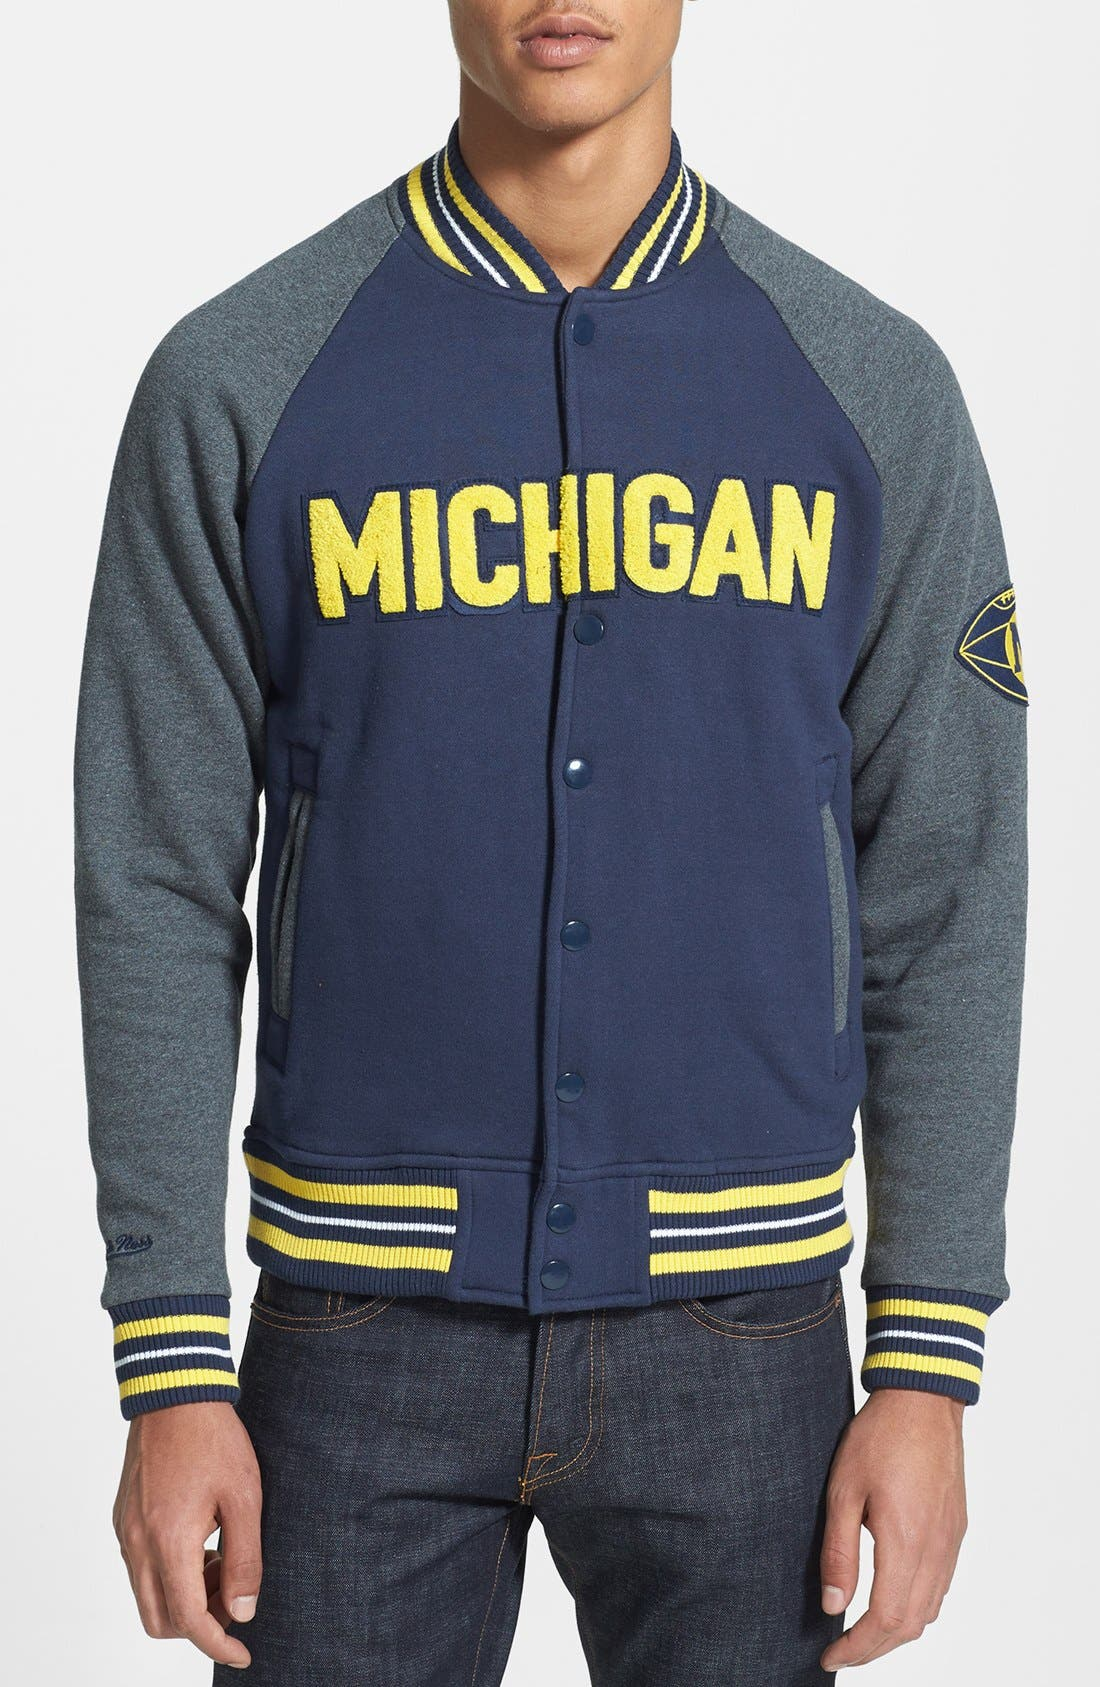 Alternate Image 1 Selected - Mitchell & Ness 'Backward Pass - Michigan' Fleece Jacket